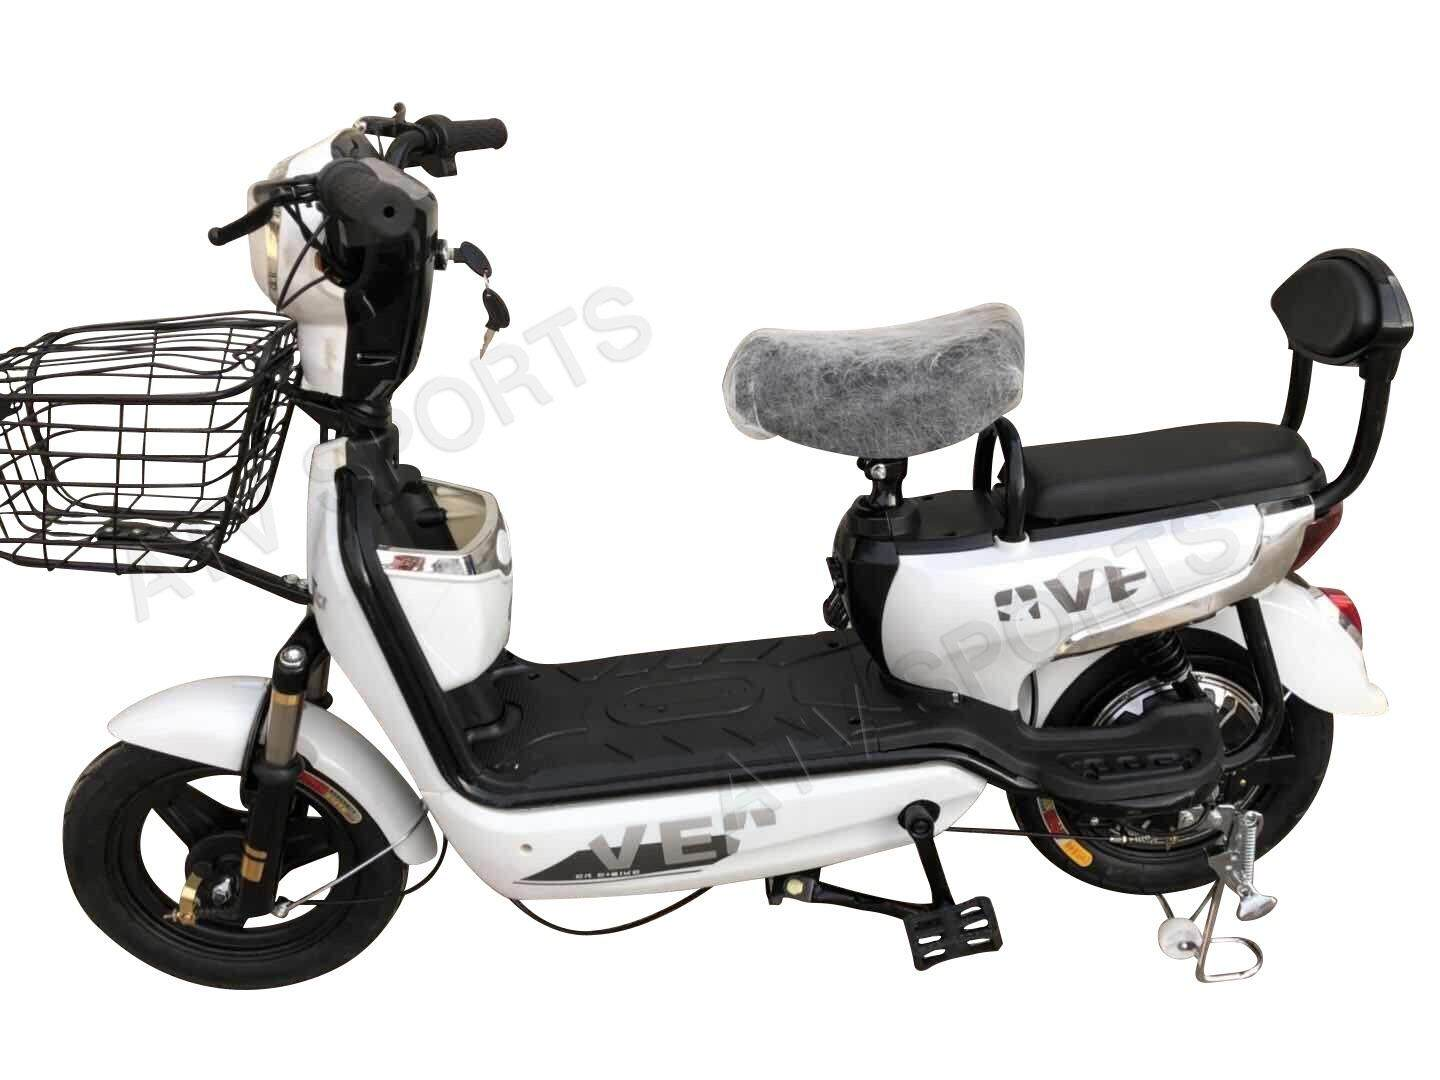 NEW!!! electric bicycles have pedals 2seat -1 year warranty